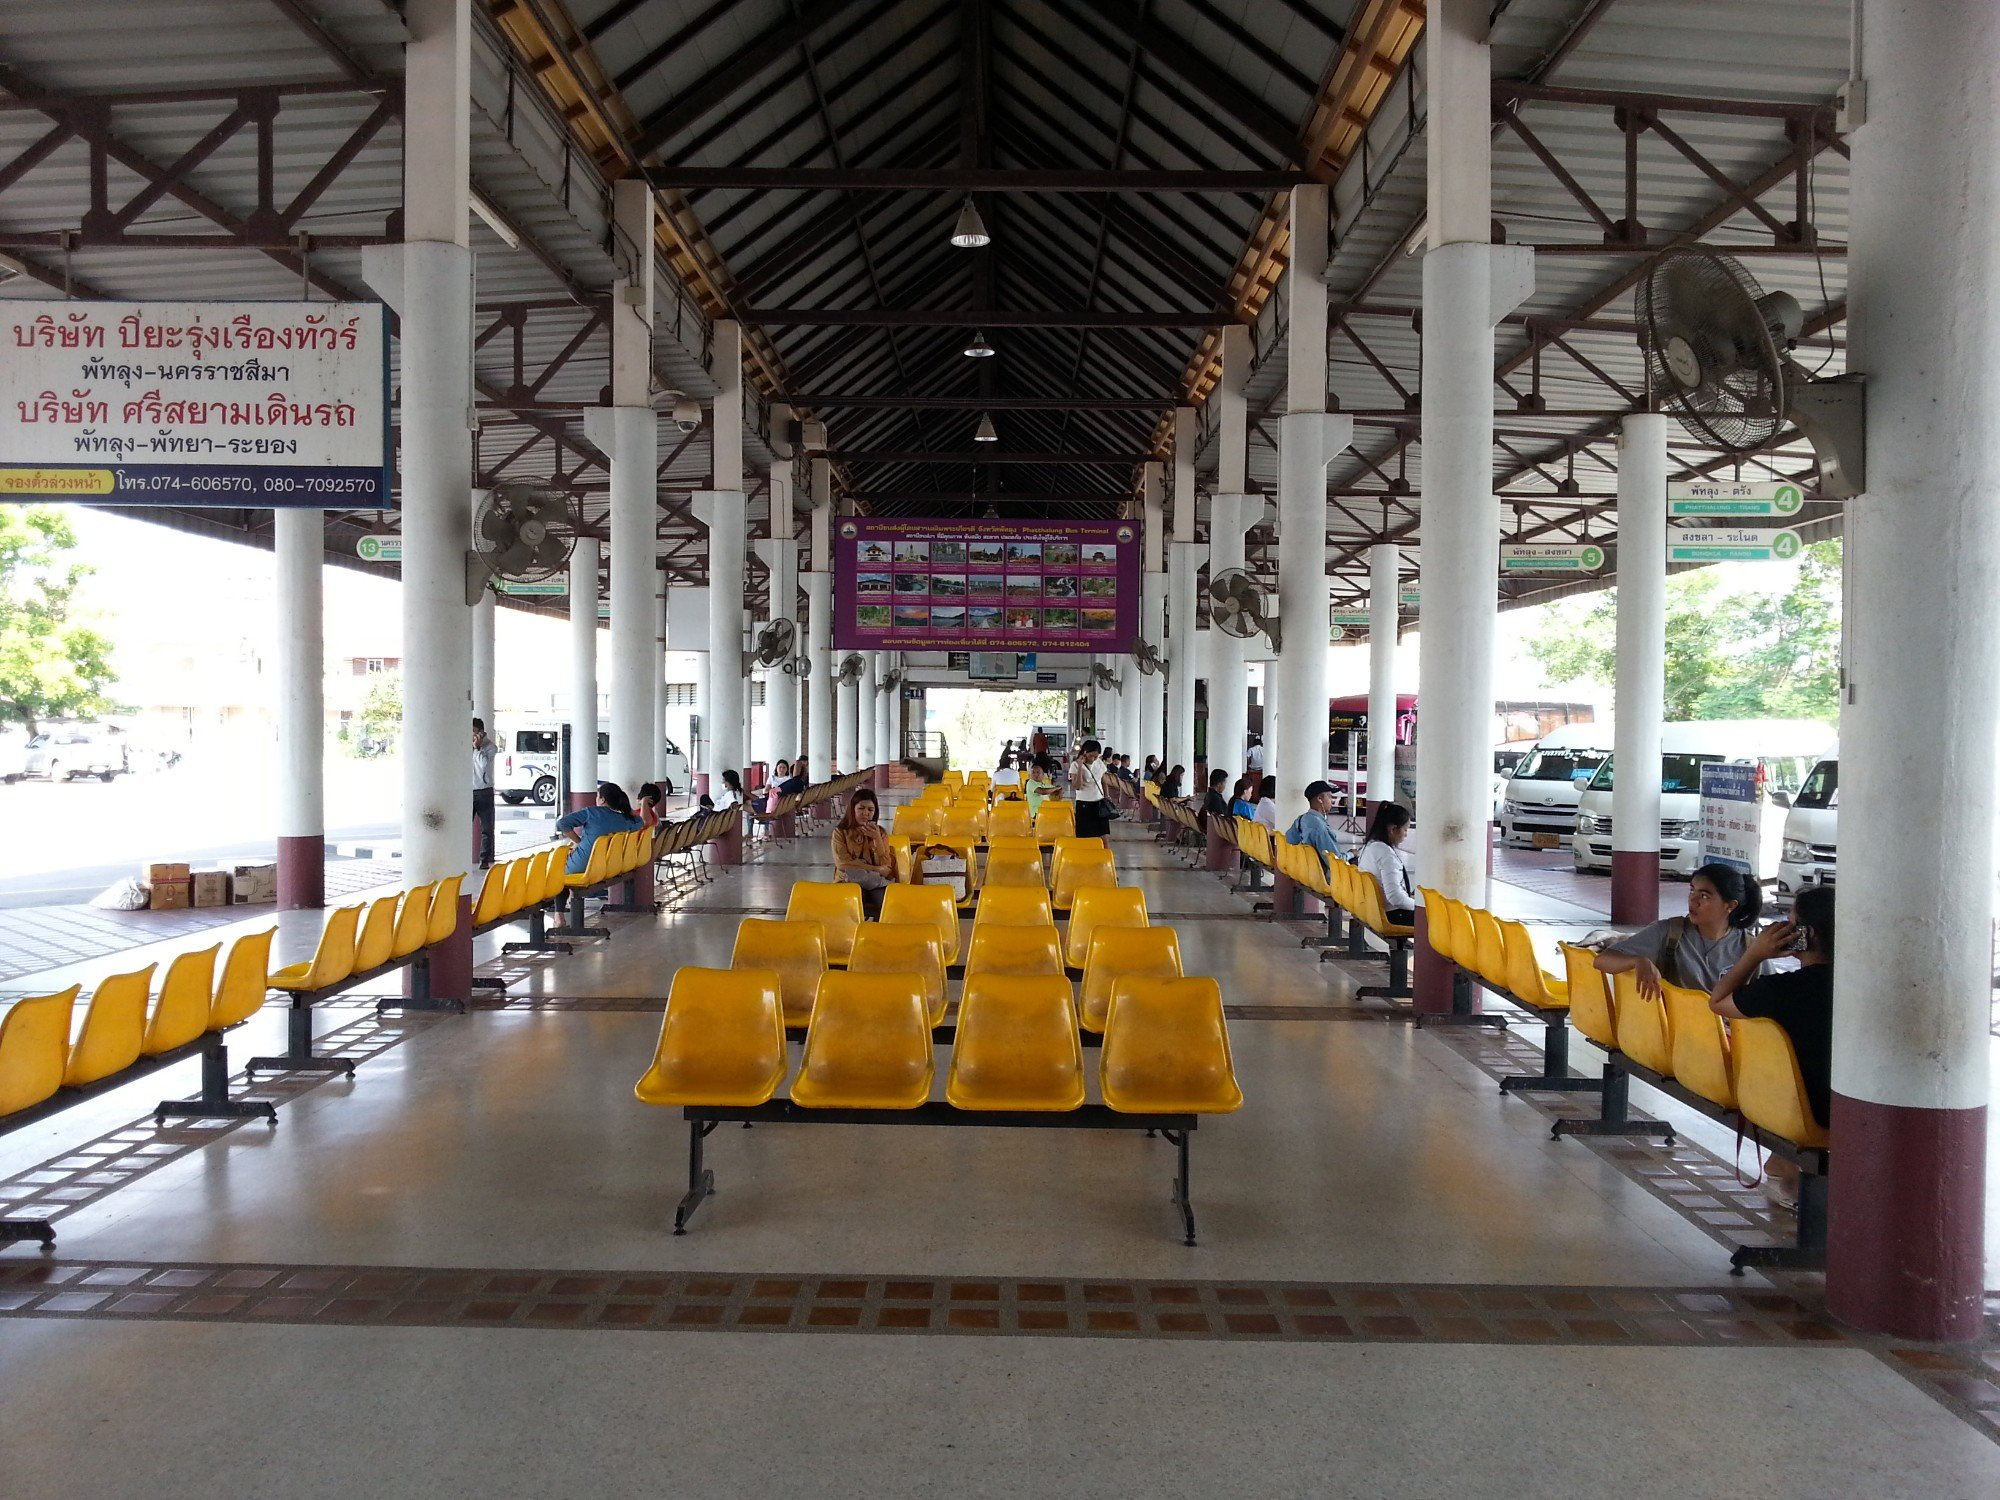 Waiting area at Phatthalung Bus Station